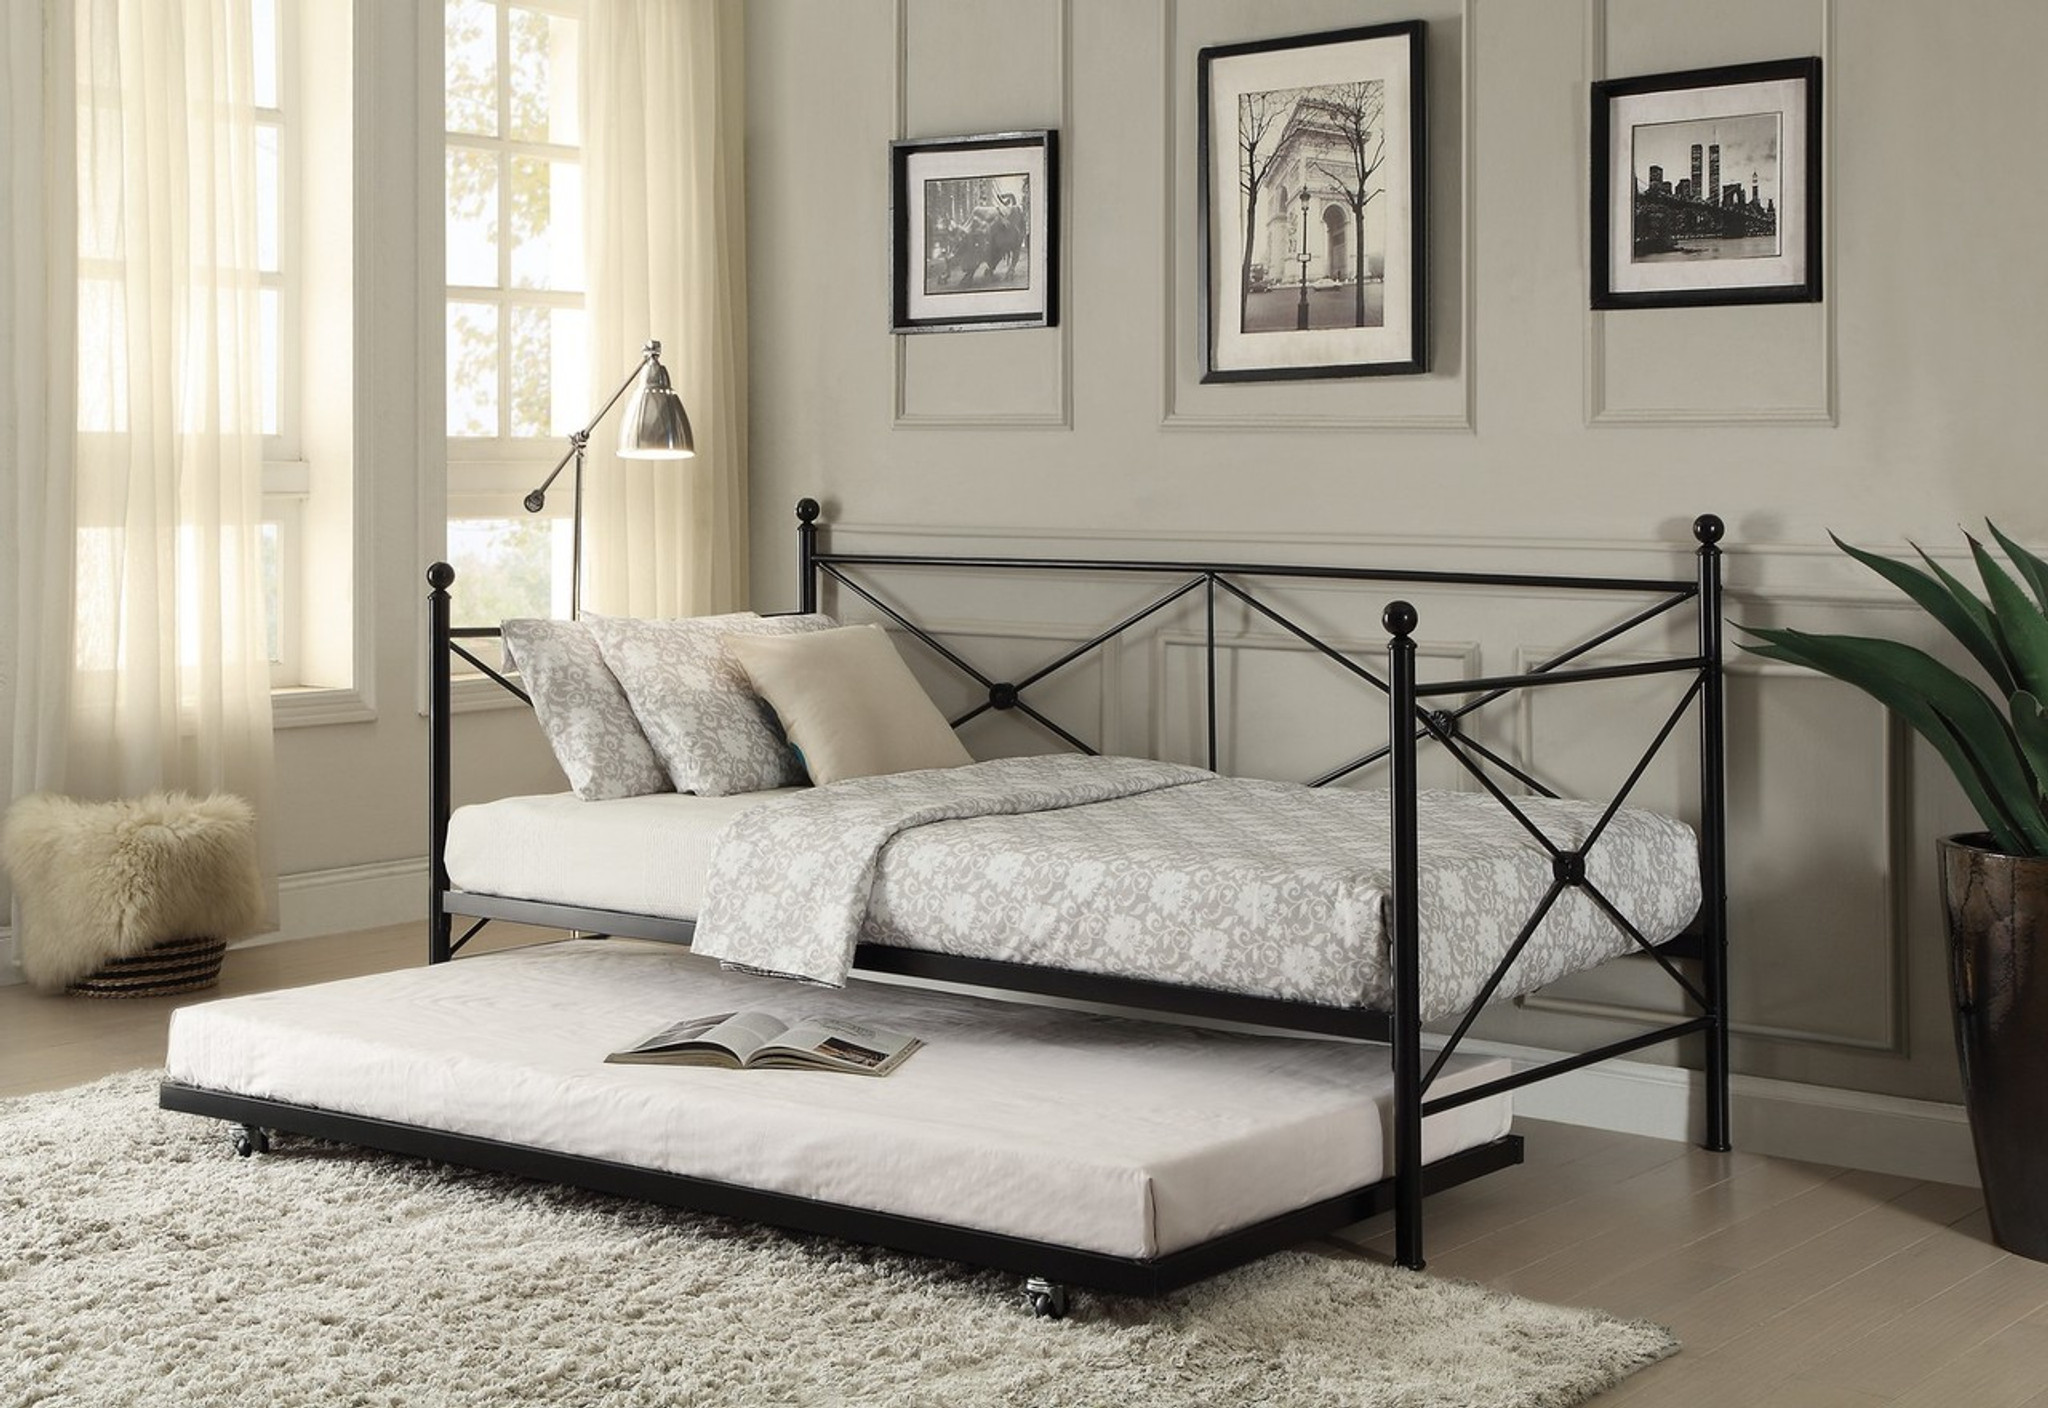 - 4964BK-NT JONES METAL DAYBED WITH TRUNDLE COLLECTION By Home Elegance